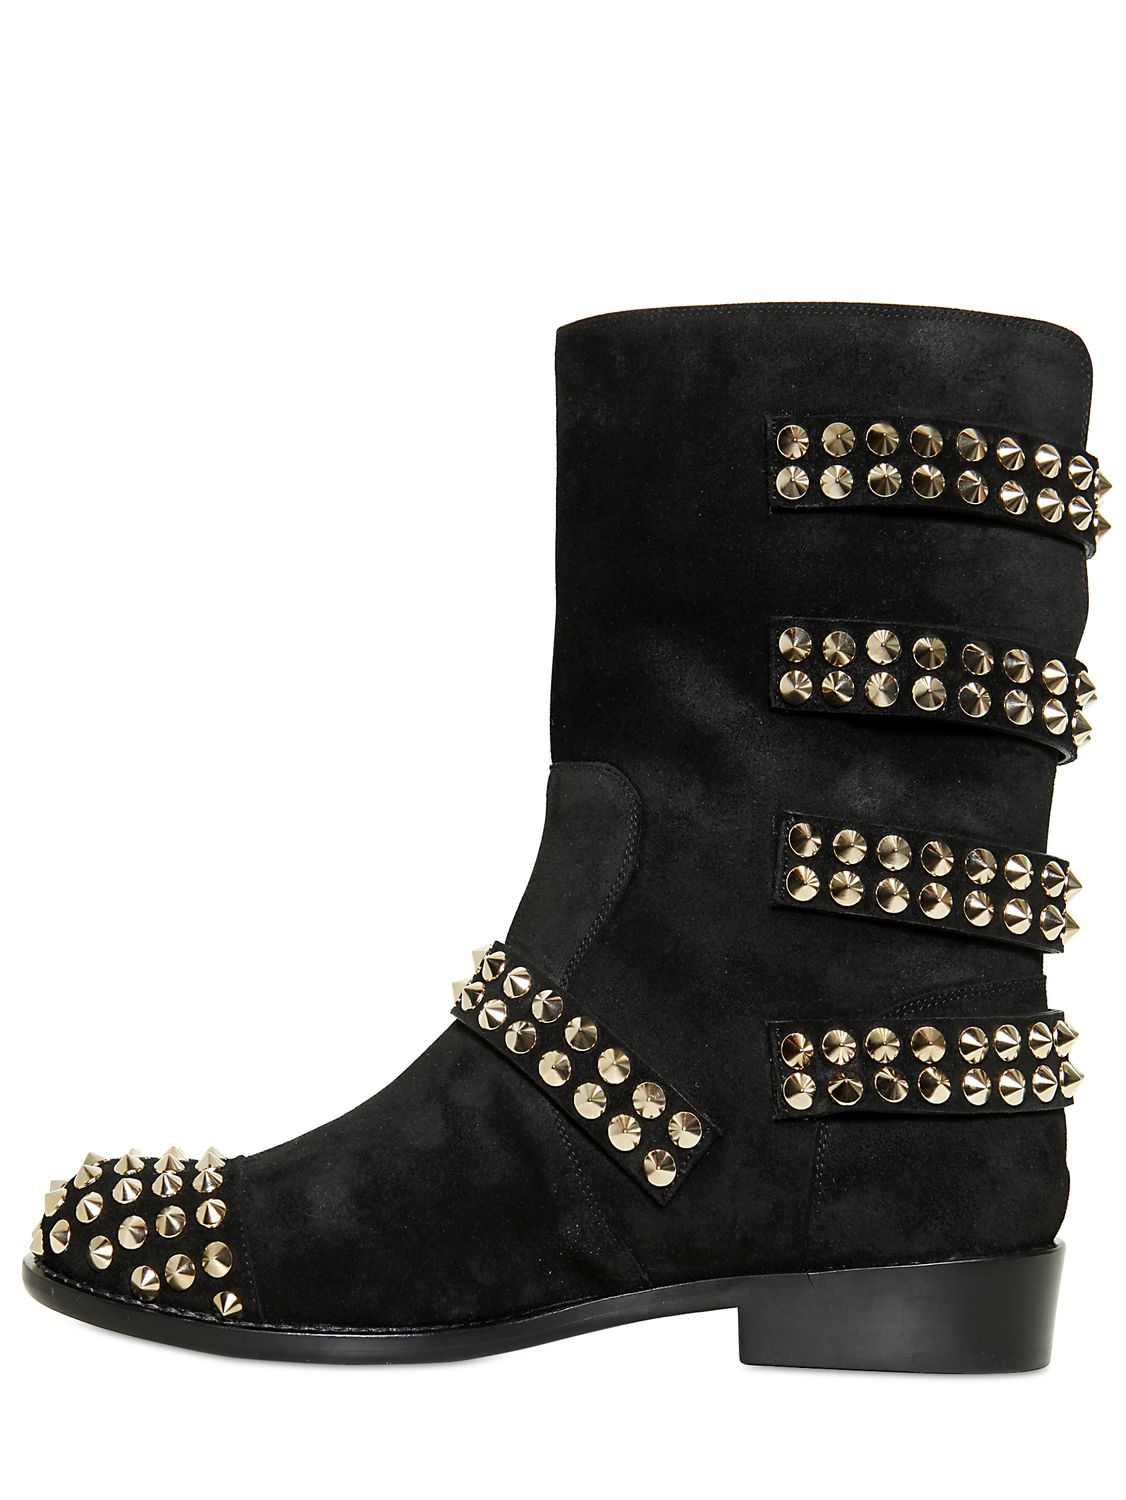 Giuseppe Zanotti Suede Embellished Boots eastbay online cYjKyYa4